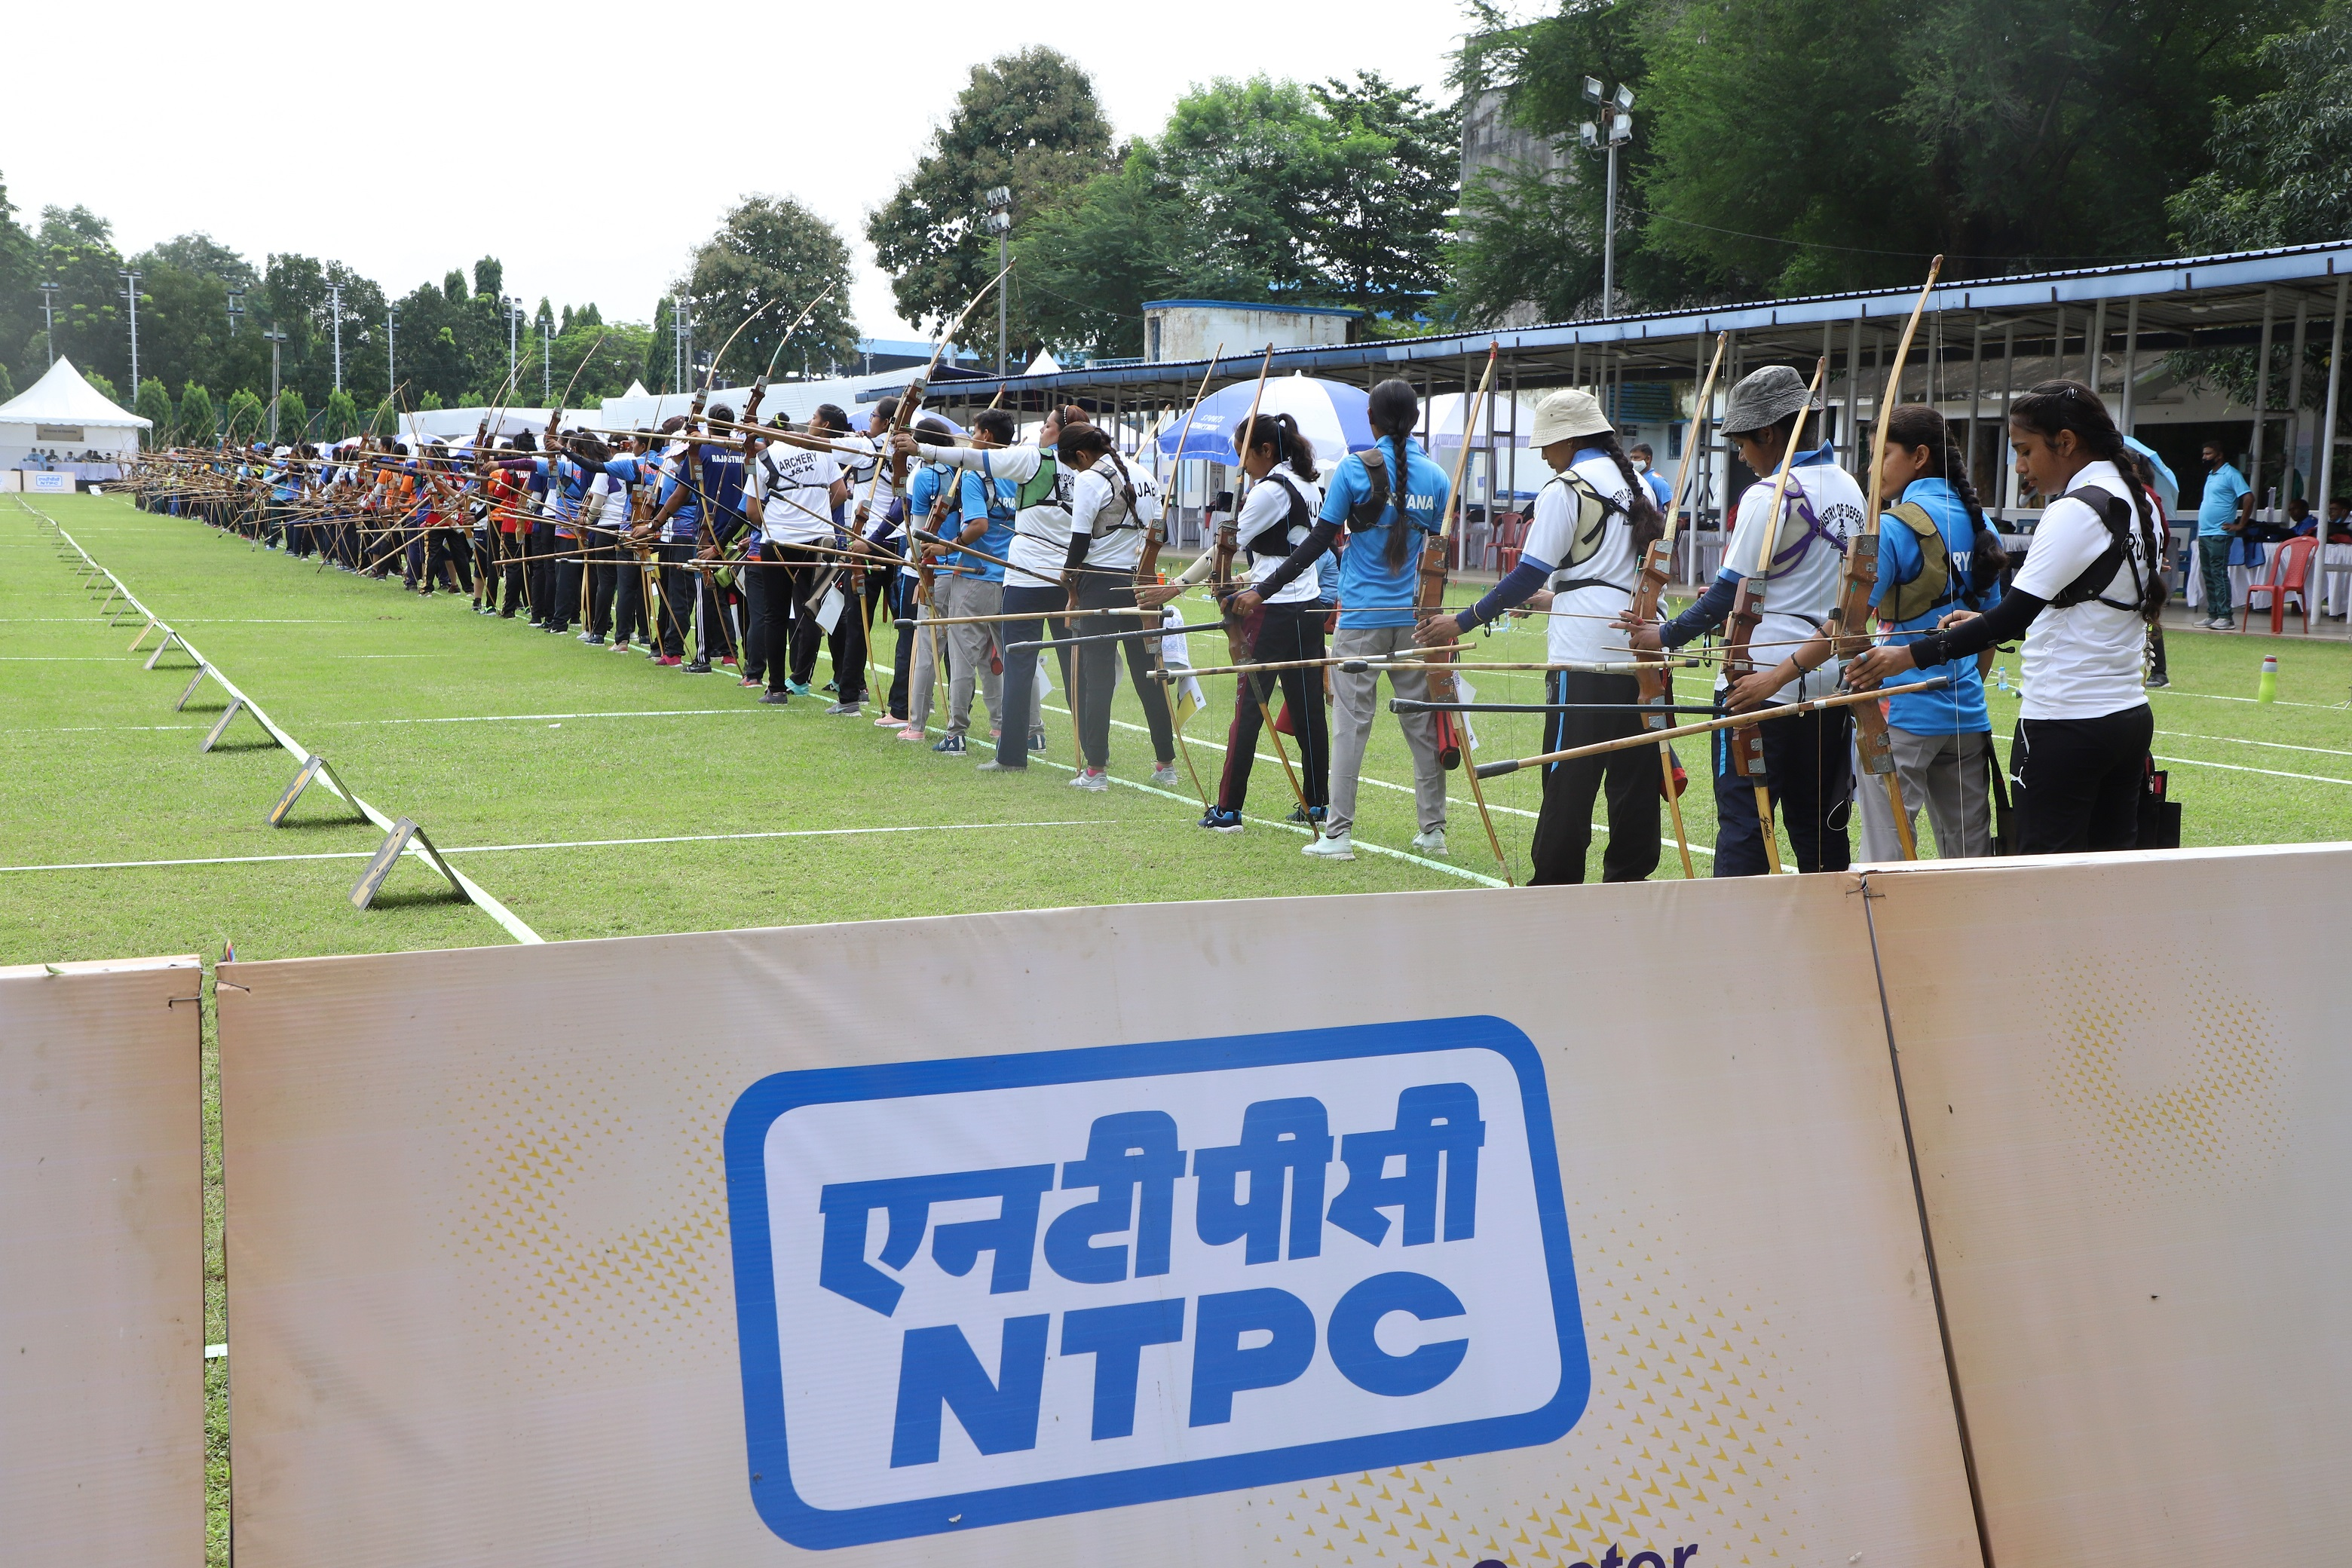 Players_in_action_during_archery_championship.JPG